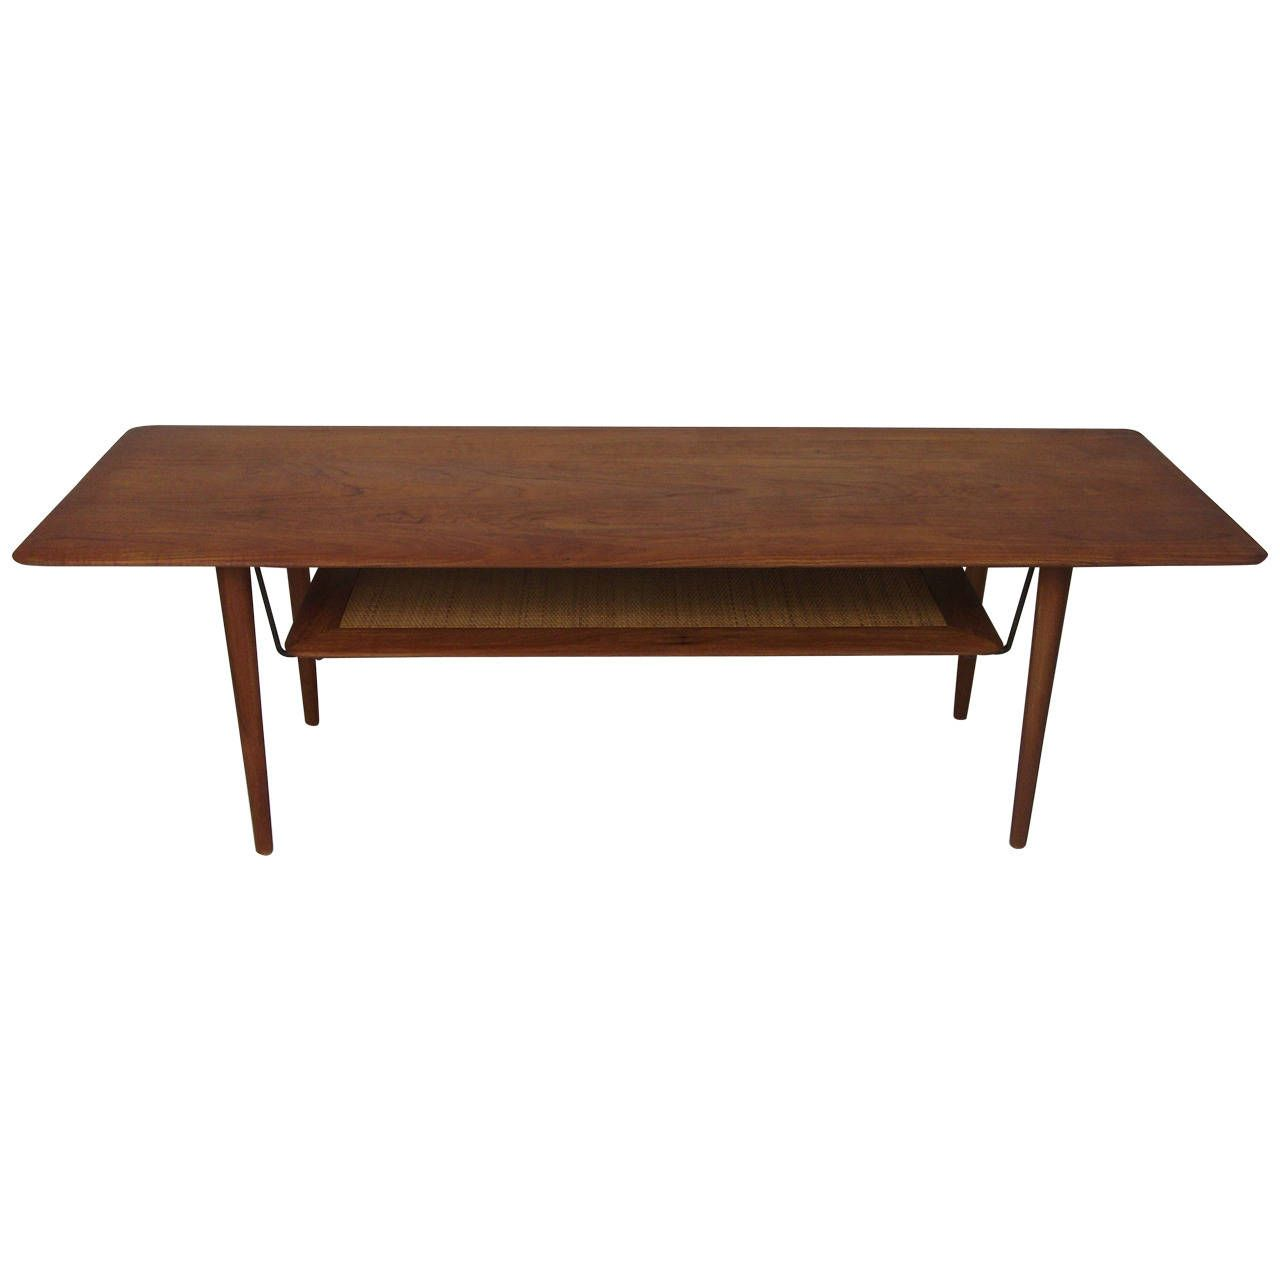 1950s Solid Teak Coffee Table Designed by Peter Hvidt & Orla Molgaard-Nielsen | From a unique collection of antique and modern coffee and cocktail tables at https://www.1stdibs.com/furniture/tables/coffee-tables-cocktail-tables/